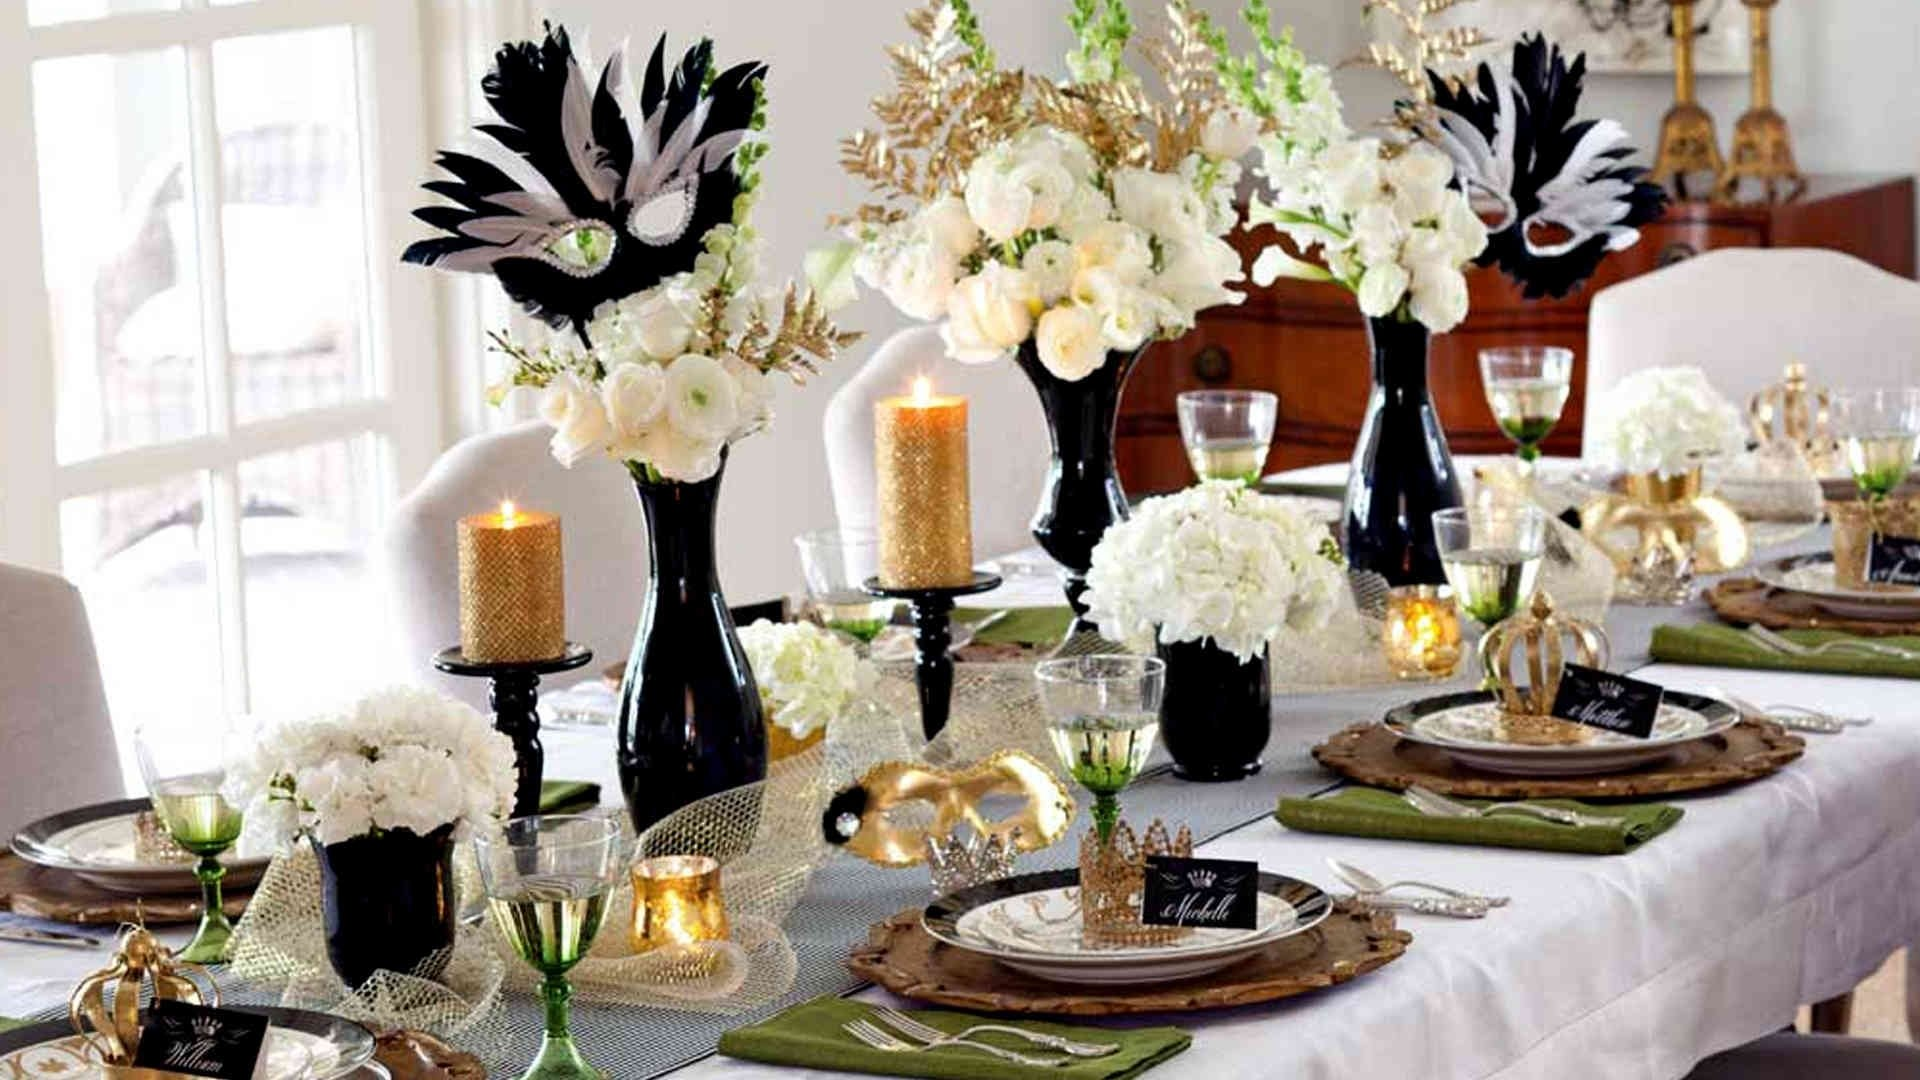 10 Pretty Romantic Ideas For New Years Eve furniture new years eve food idea chinese year table centerpiece 2021